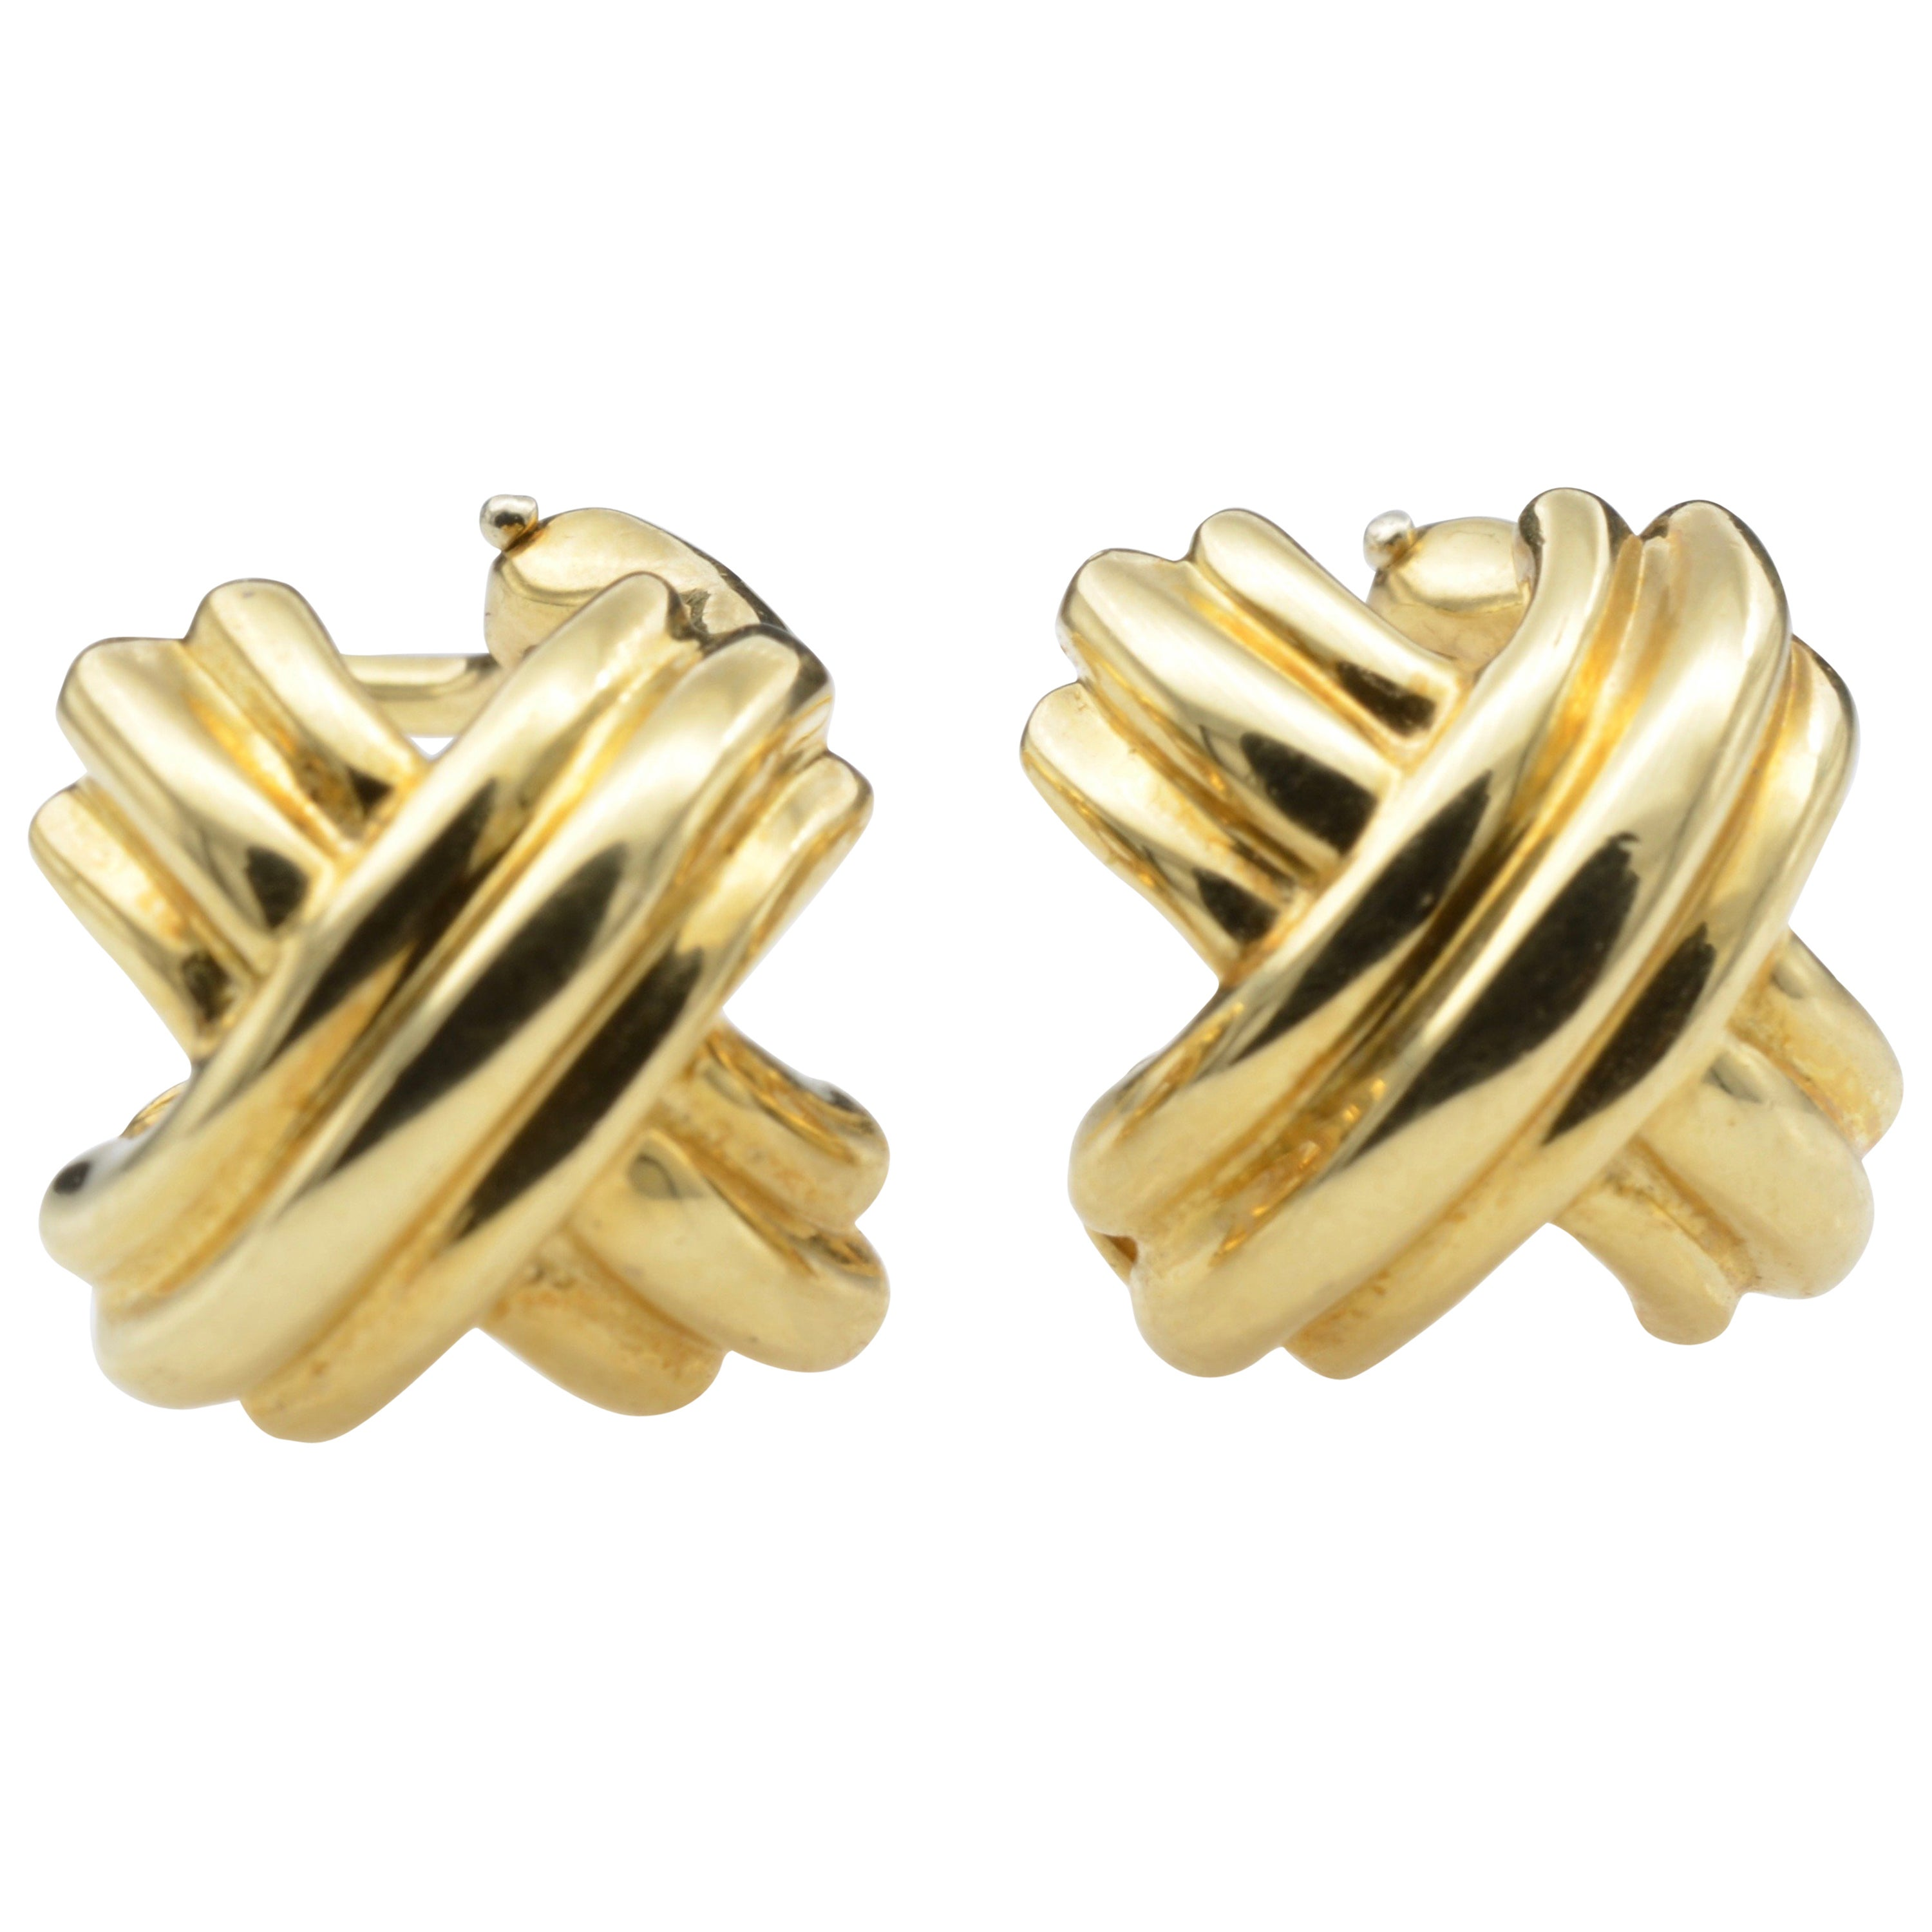 e687f1b15 Tiffany and Co. 18 Karat Yellow Gold Clip Earring by Paloma Picasso For  Sale at 1stdibs